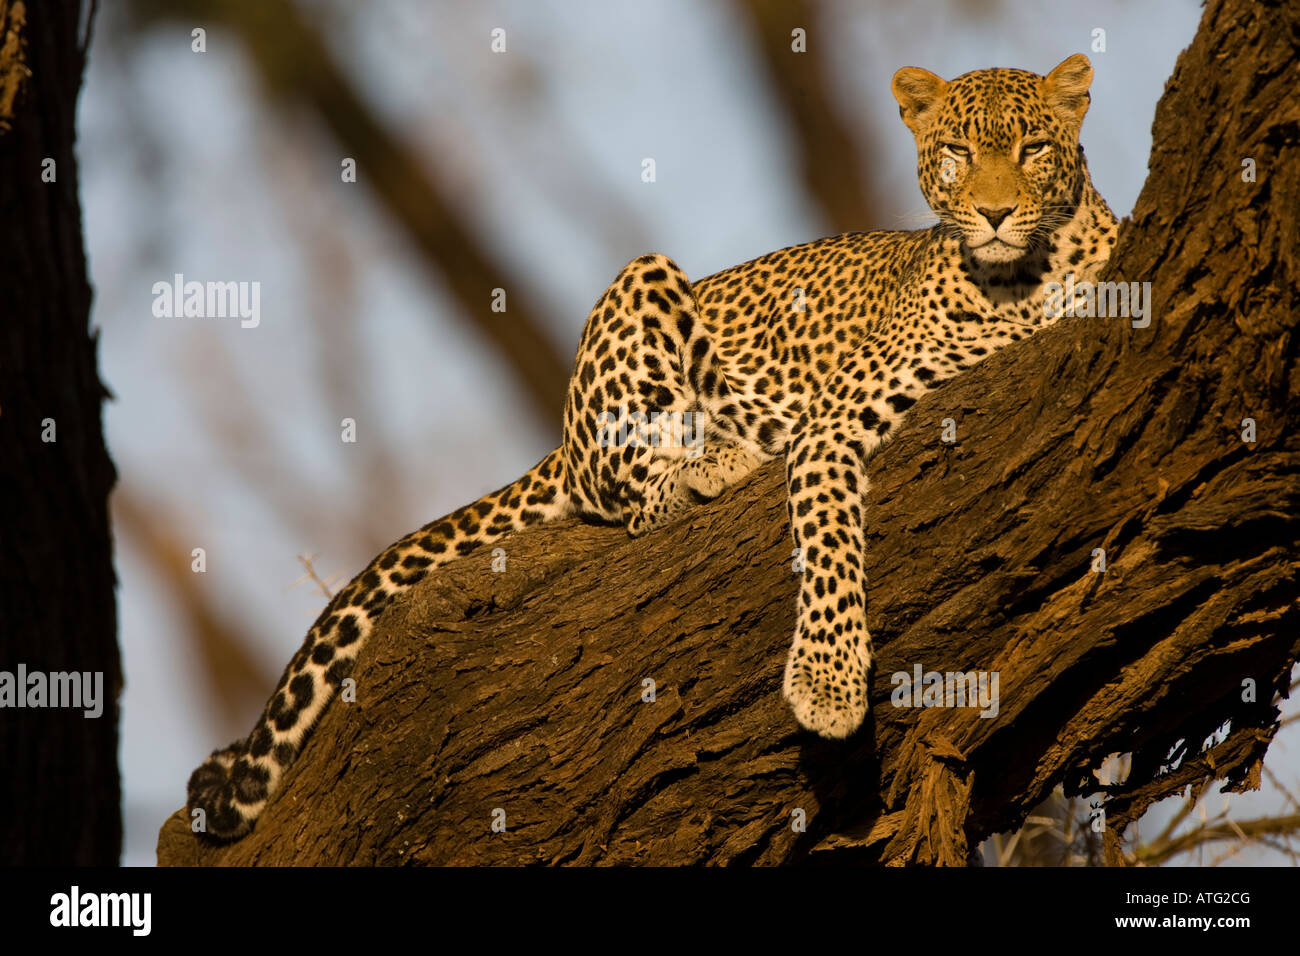 Leopard (panthera pardus) in tree - Stock Image